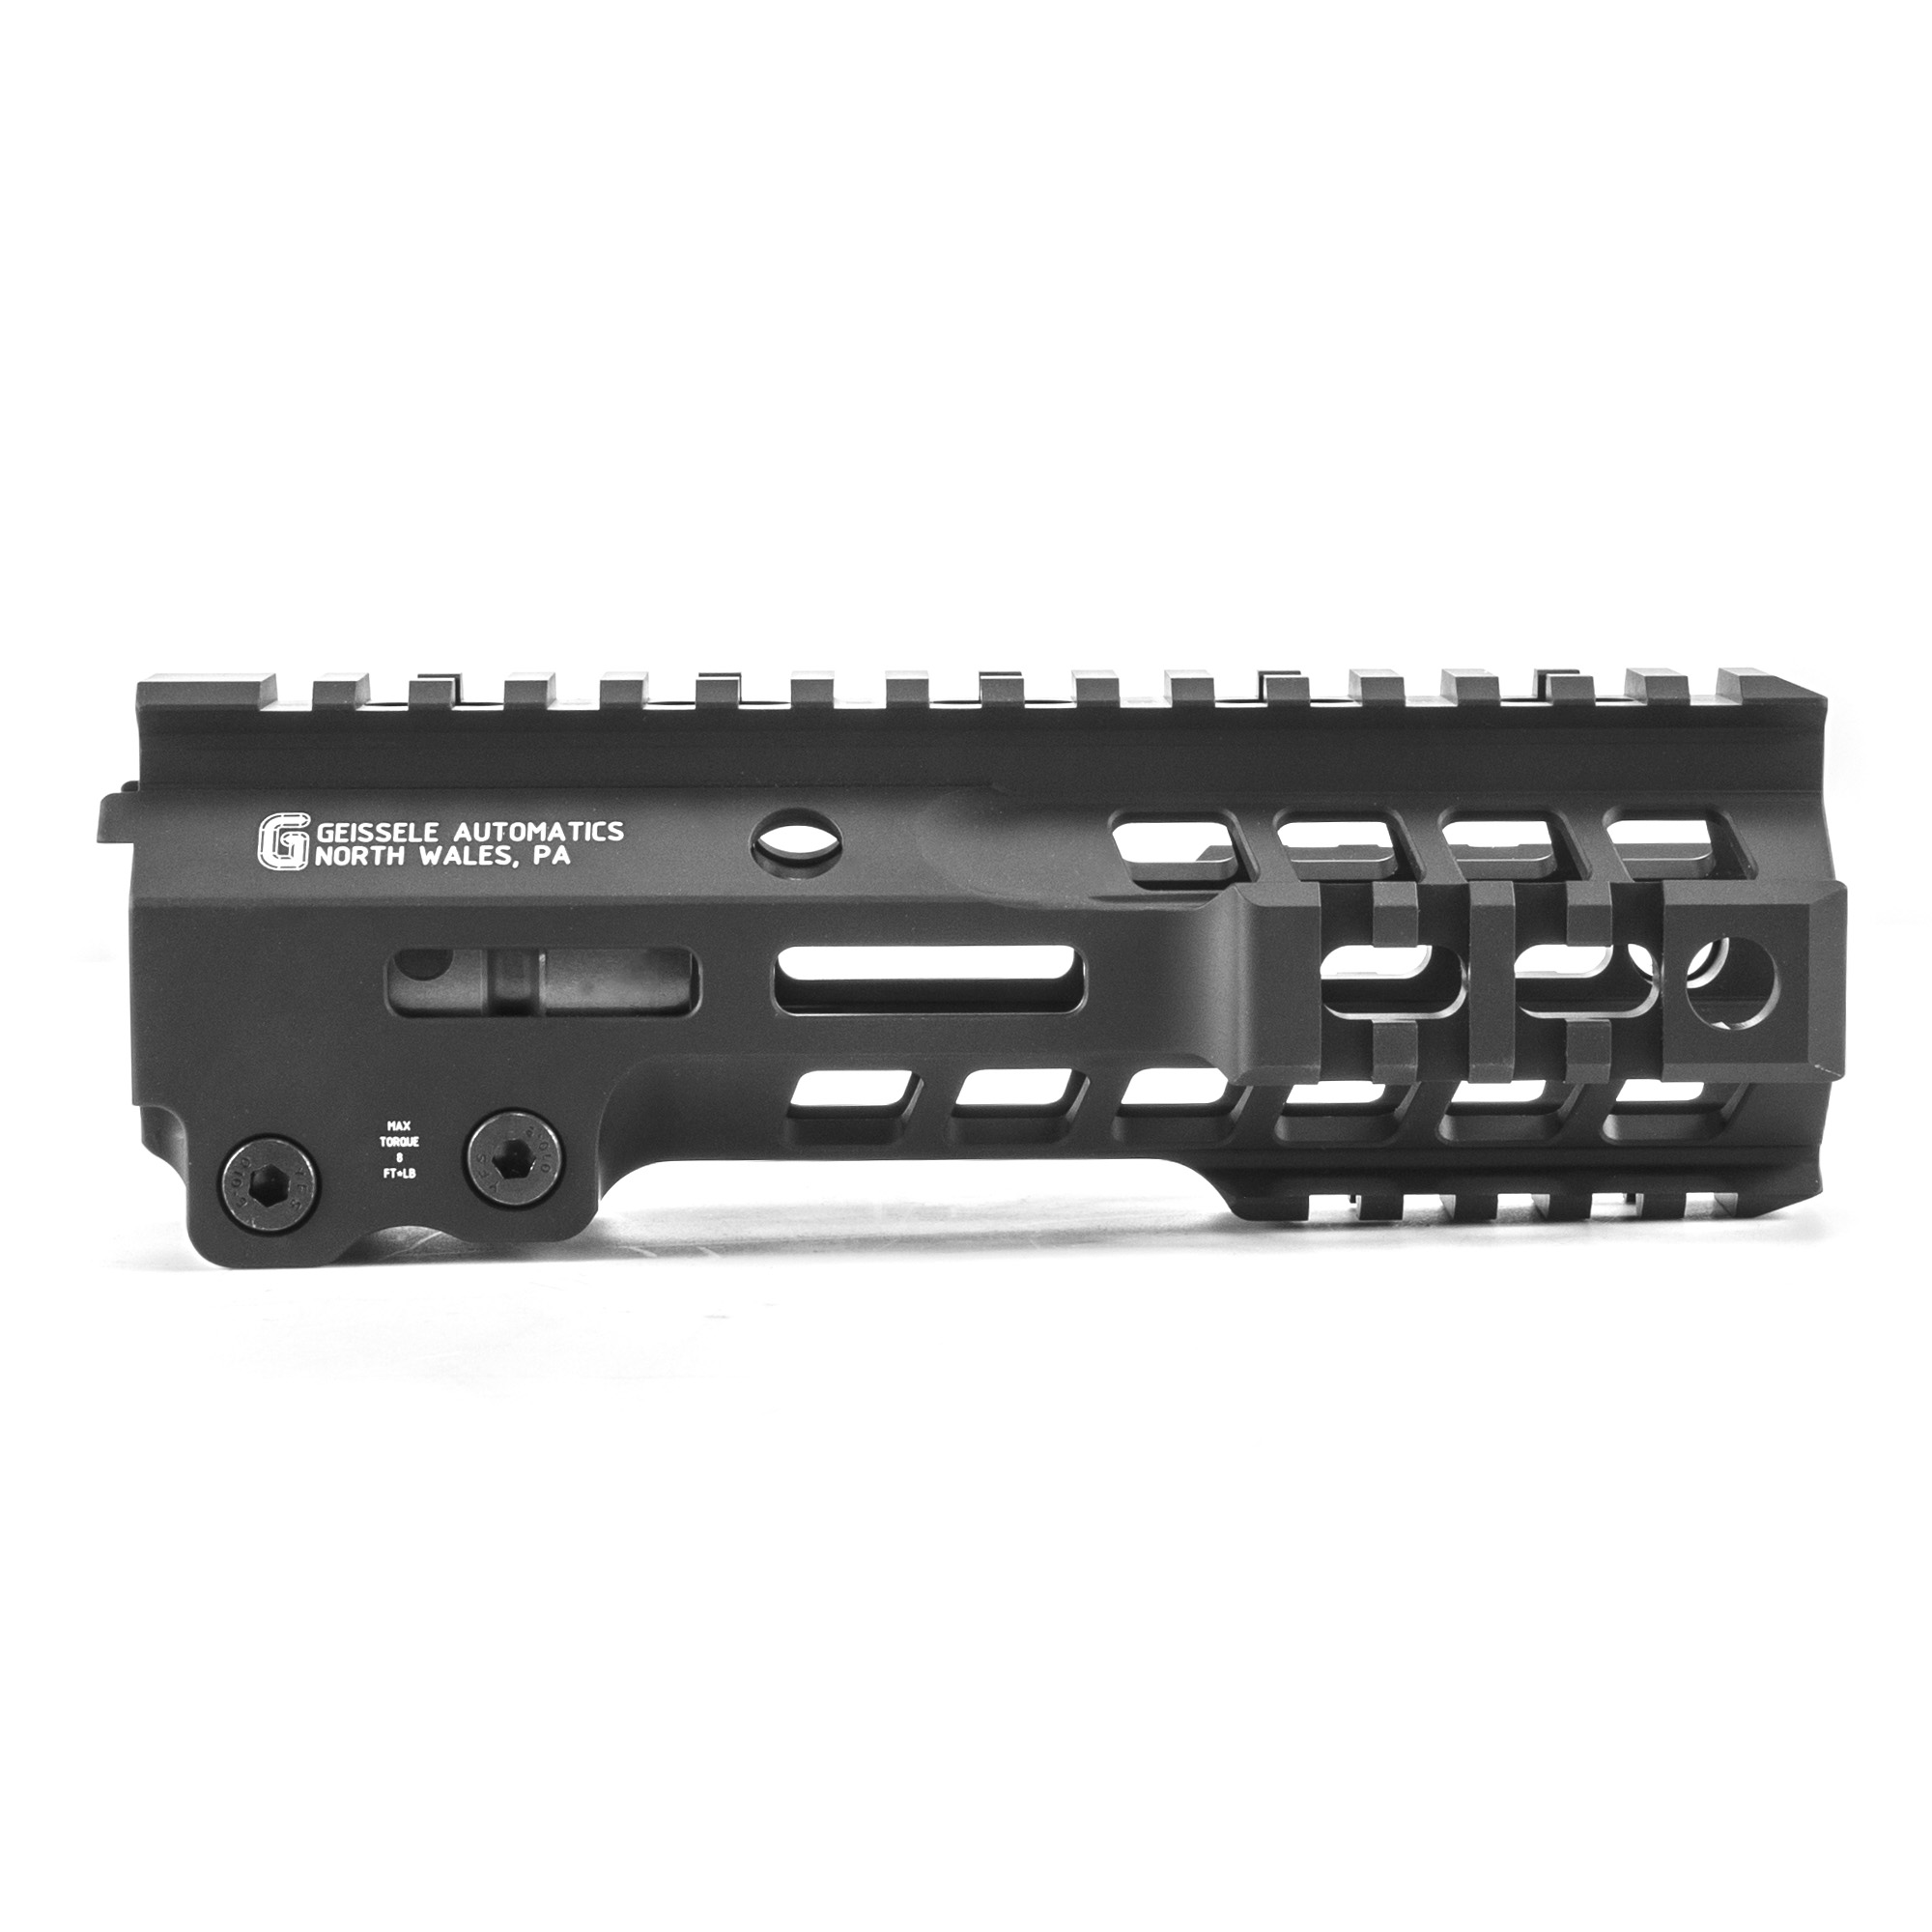 """Geissele's Super Modular 7"""" MK13 M-Lok Rail is the latest entry to the Geissele line up of Super Modular Rails. The new handguard design offers a smaller diameter and overall height to create a slimmer package. Included with the MK13 Super Modular Rail is an updated version of the proven Geissele Barrel Nut design"""" not only providing ease of installation but superior rigidity. The long surface contact of the 2.25"""" barrel nut interfaces with the receiver creating a platform that can be trusted to be straight and true the entire length of the free float rail. The MK13 is precision machined using 6061-T6 aluminum due to its strength"""" rigidity and lightweight properties. Utilizing Magpul's M-LOK technology in the 3"""" 6"""" and 9 o'clock positions and machined-in Picatinny rails at the end allow the end user to customize their rifle and securely mount lights"""" bipods and other firearm accessories. The Geissele MK13 Super Modular rail is Type 3 Hardcoat Anodized. This product is bundled with a low-profile Geissele Super Gas Block."""